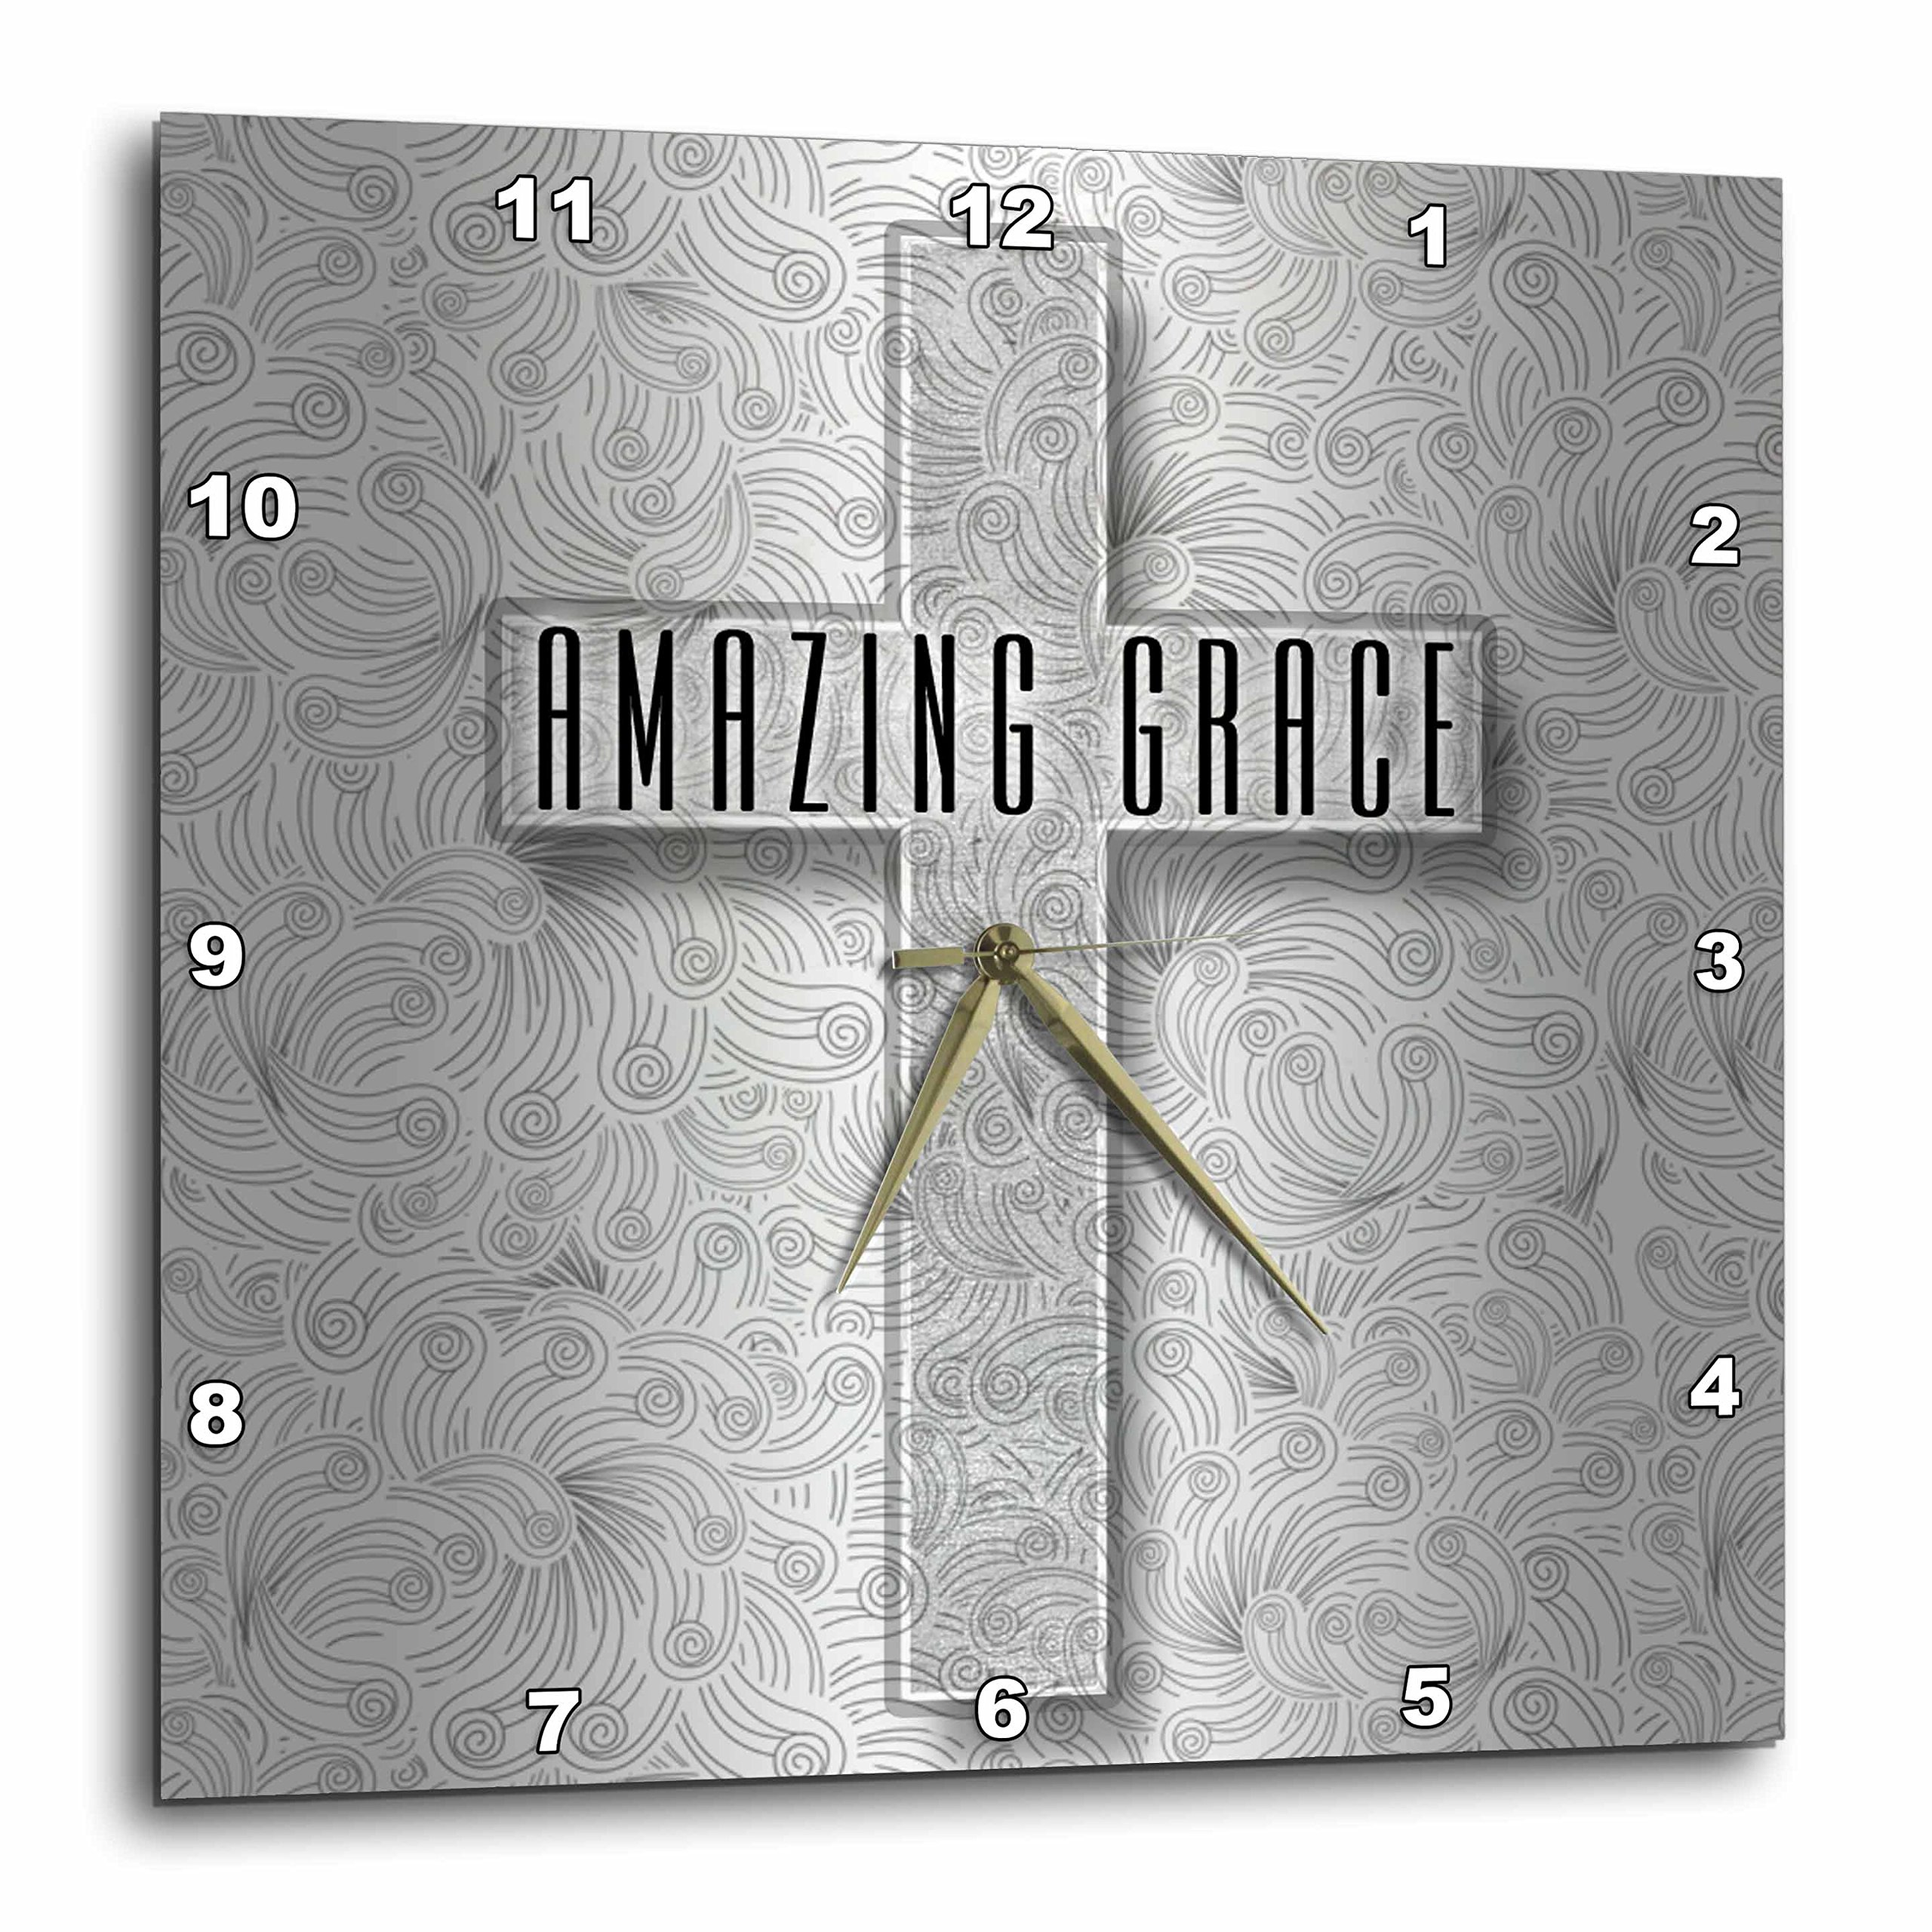 3dRose Amazing Grace Silver Christian Cross with Swirls Elegant and Simple Wall Clock, 15 x 15